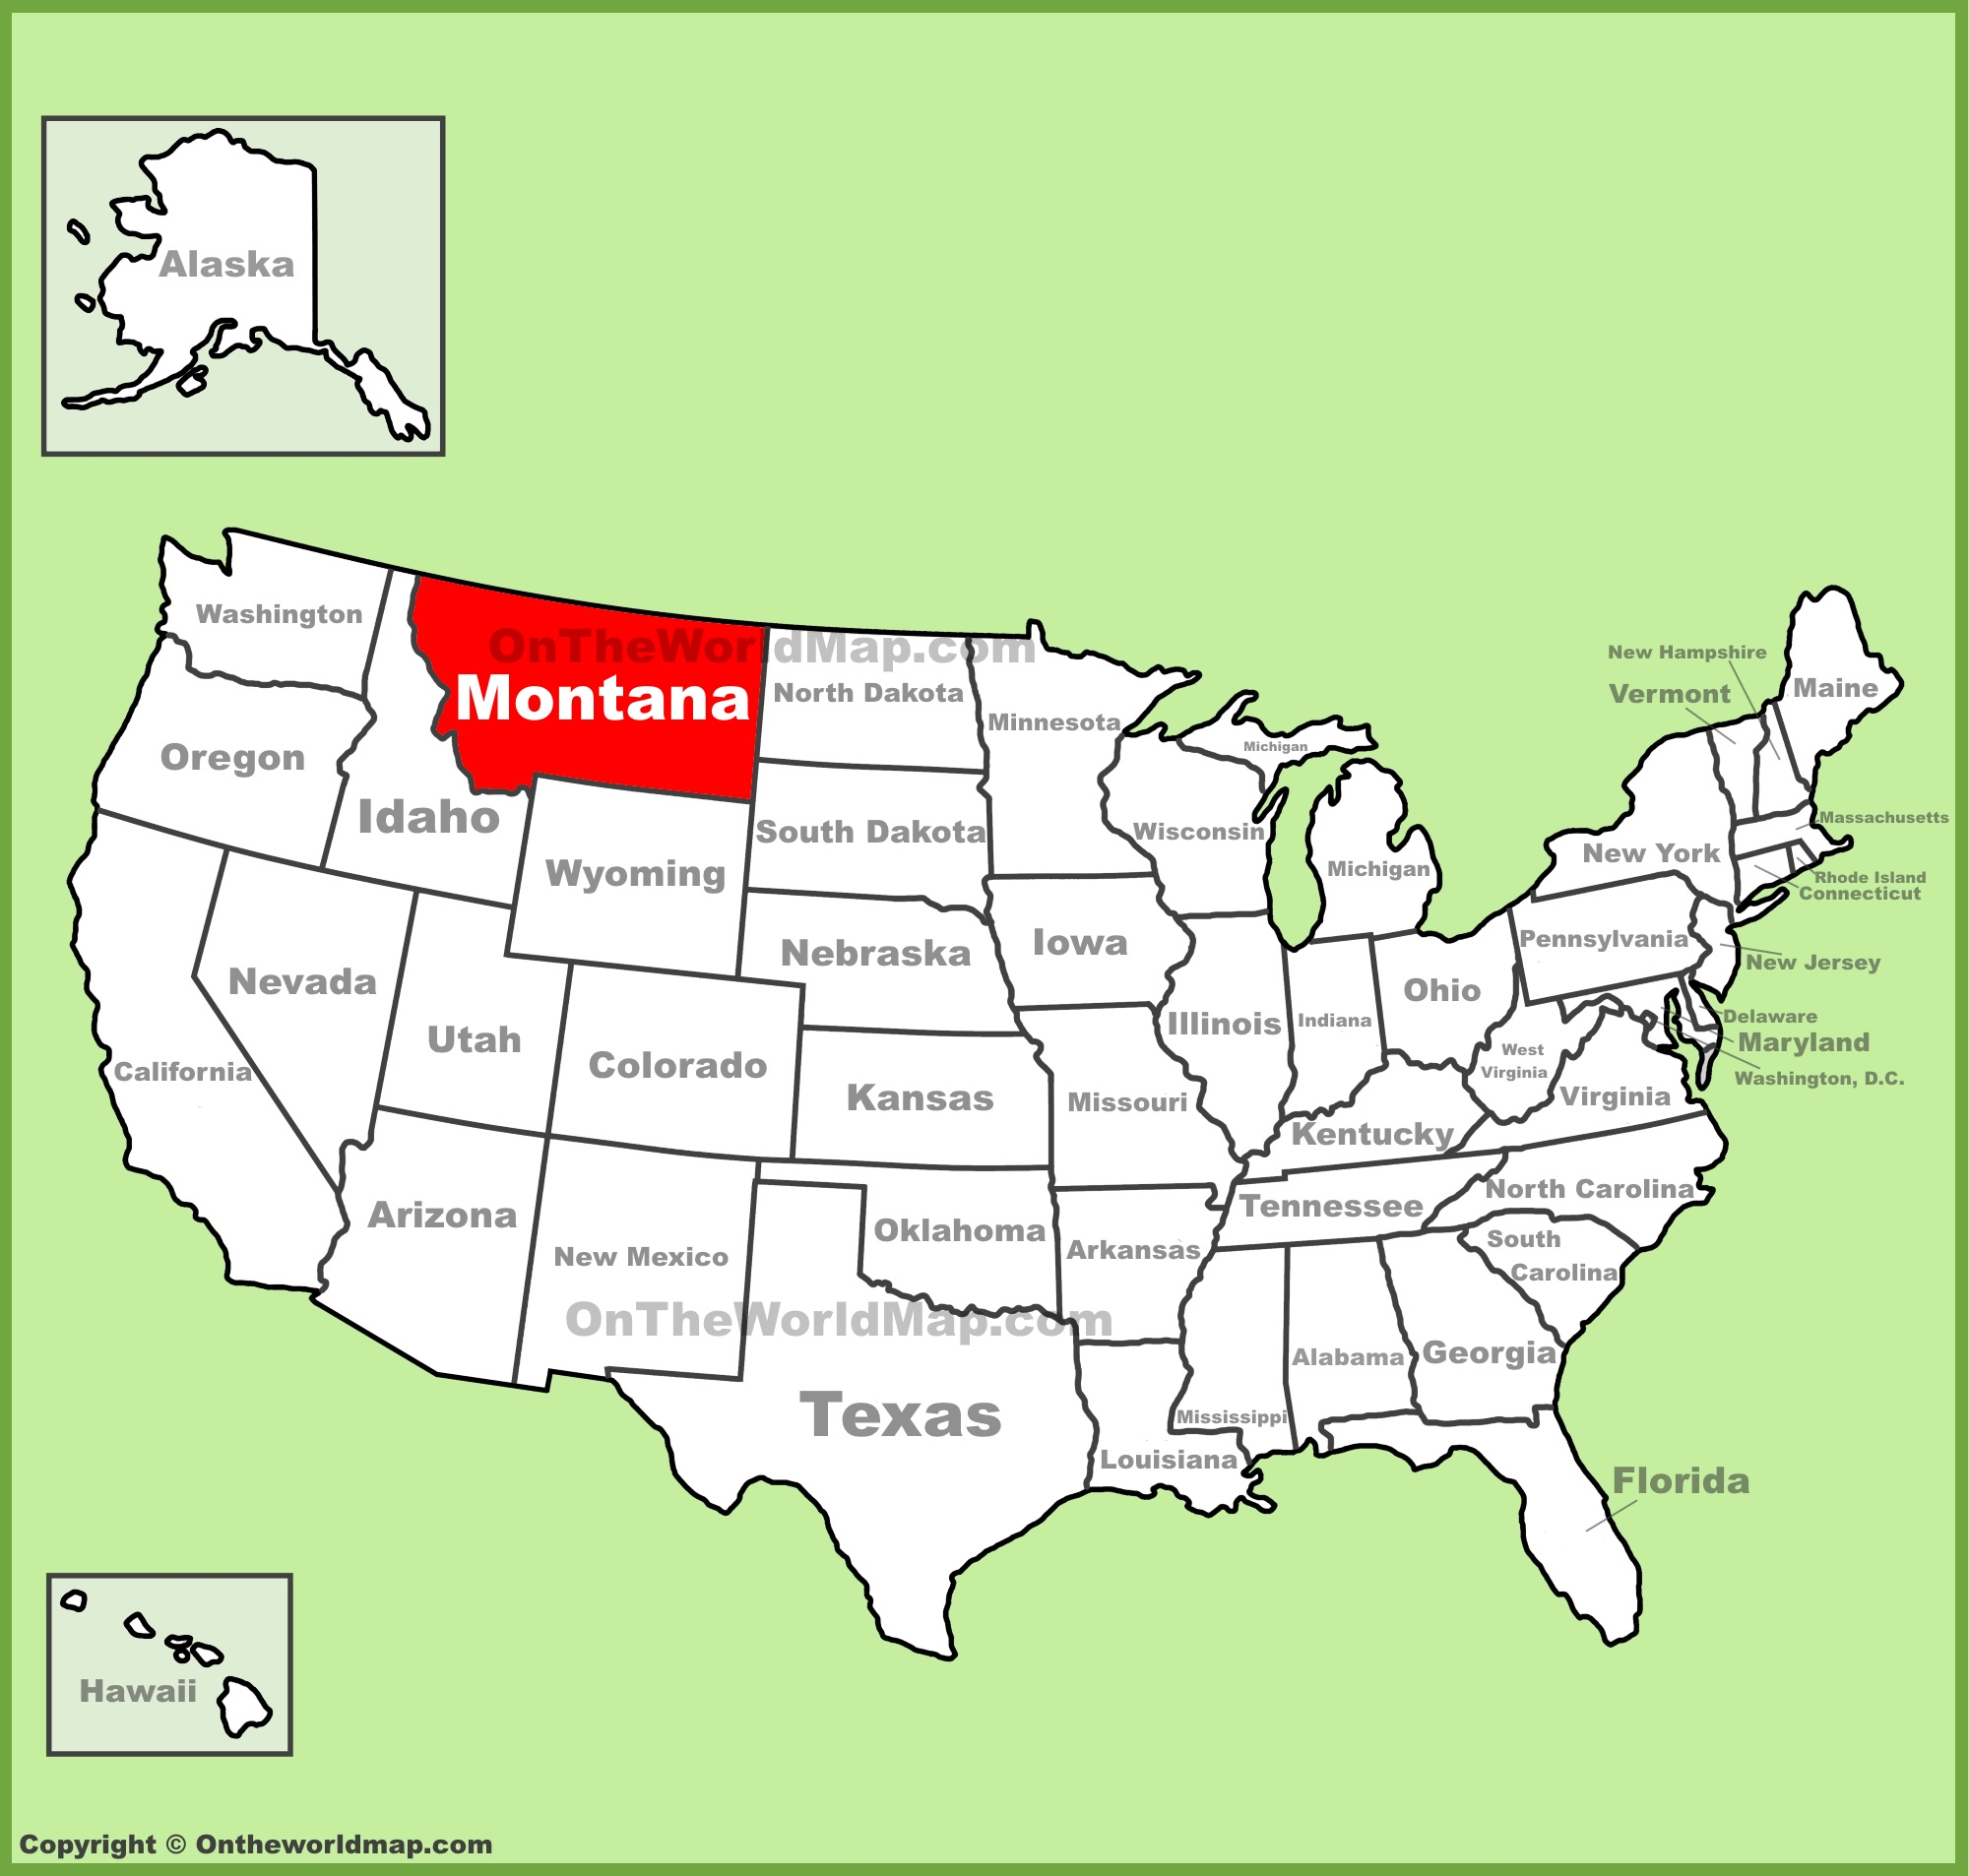 Montana location on the U.S. Map